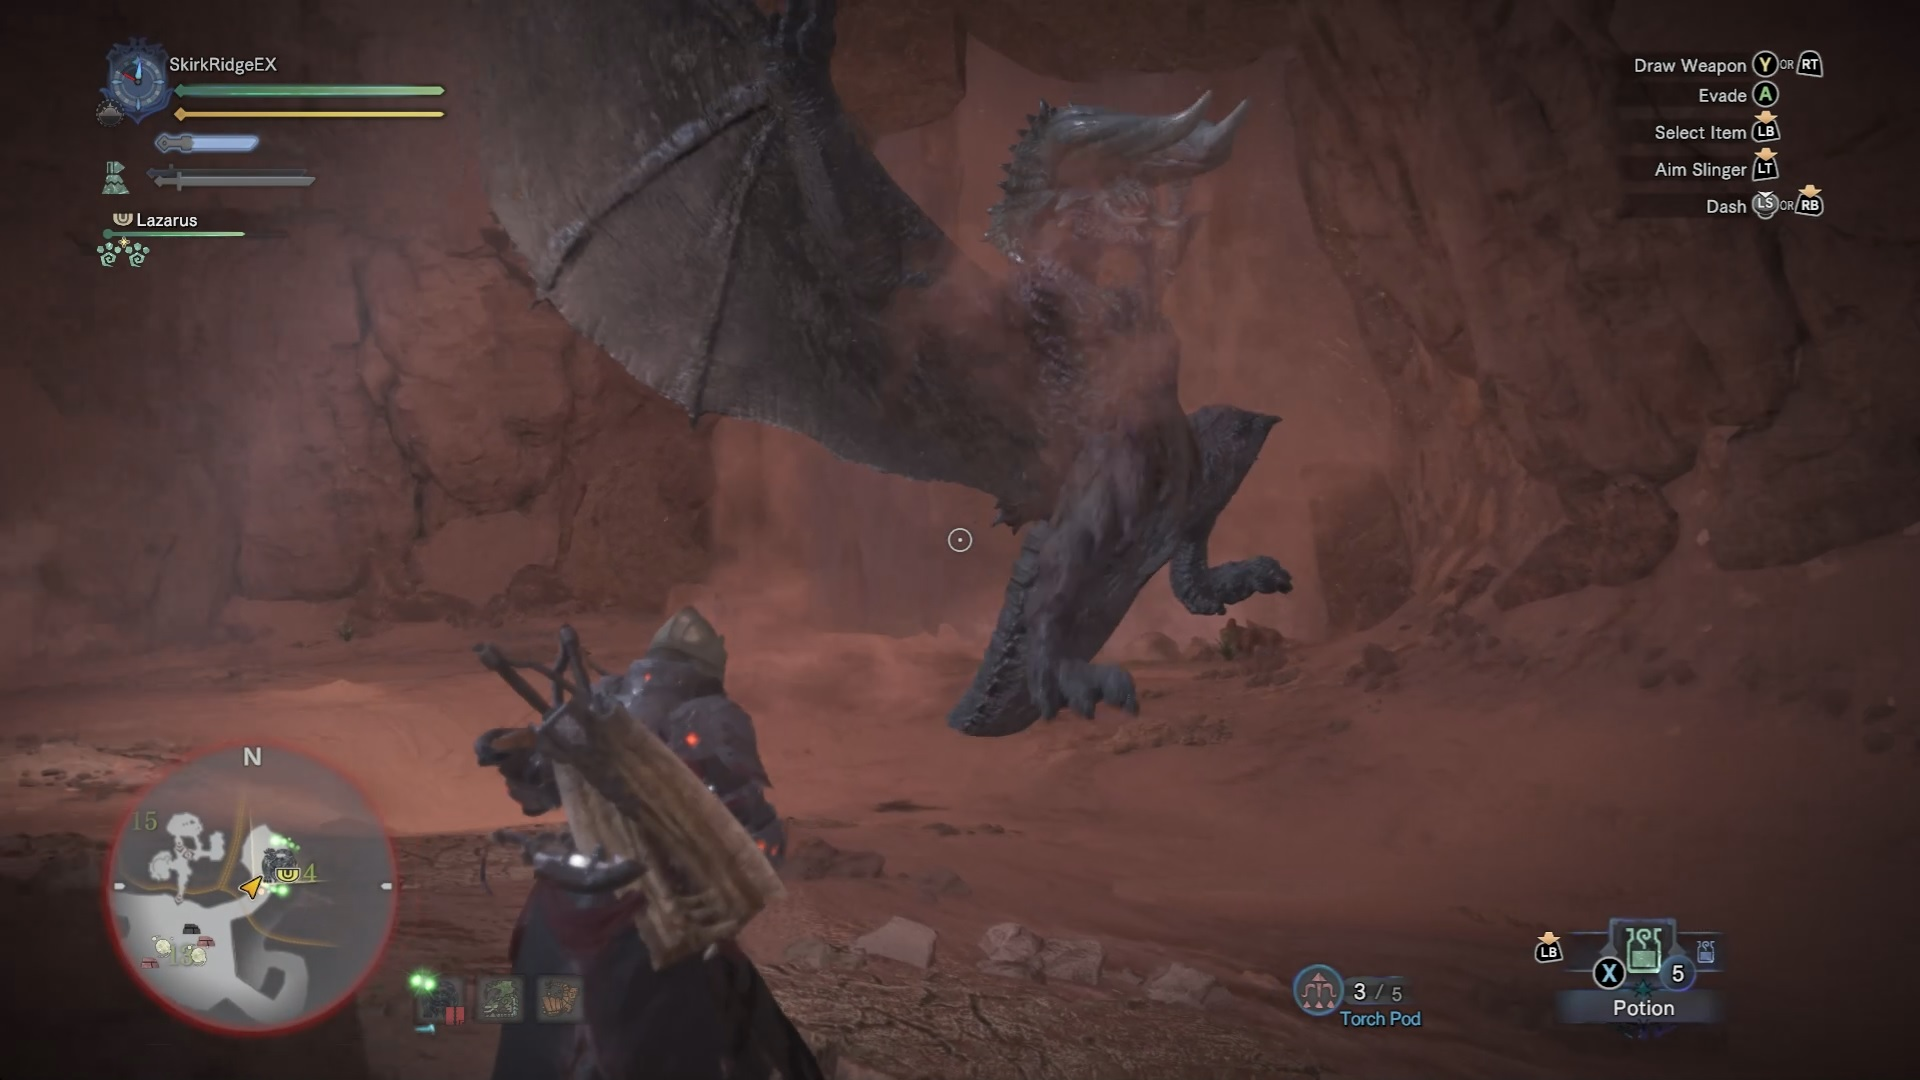 Black Diablos jumps out of the ground and tackles Palico.